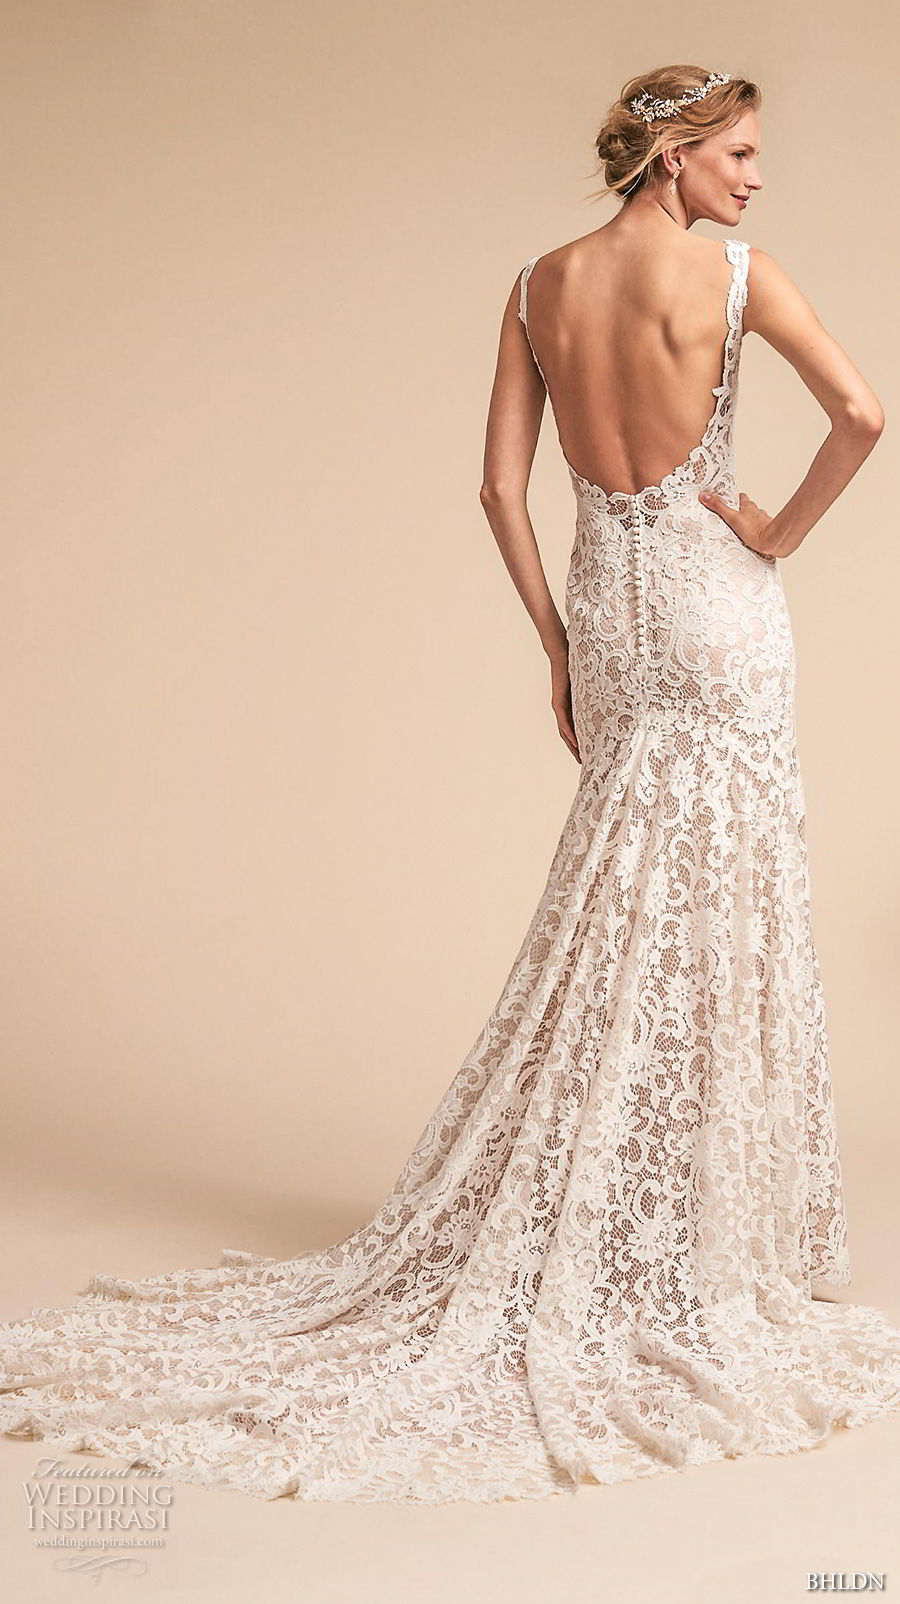 bhldn spring 2018 bridal sleeveless v neck full embellishment elegant romantic drop waist a  line wedding dress open scoop back medium train (7) bv